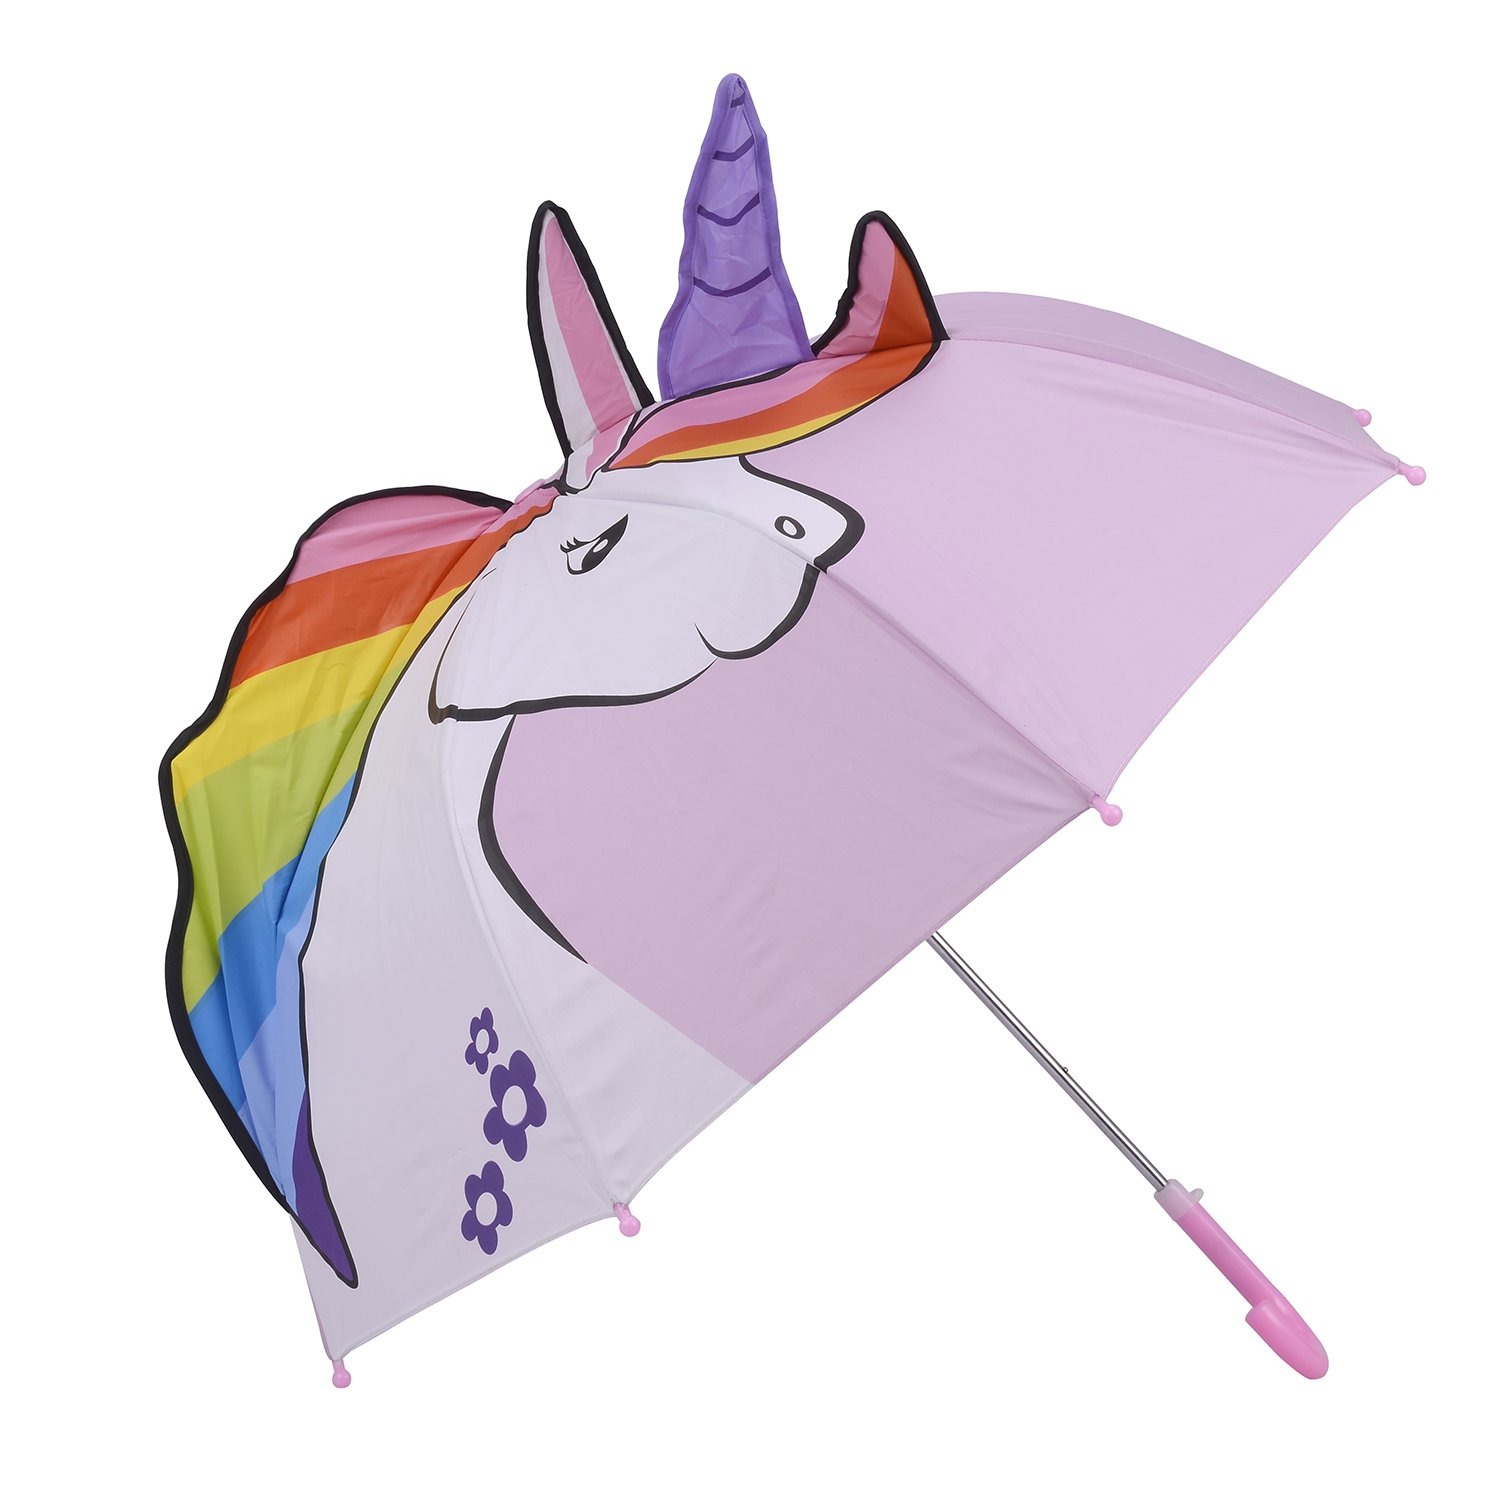 Kidorable Unicorn Pop up Umbrella for Kid with Safety Open and Close by Micaddy | Age 3-